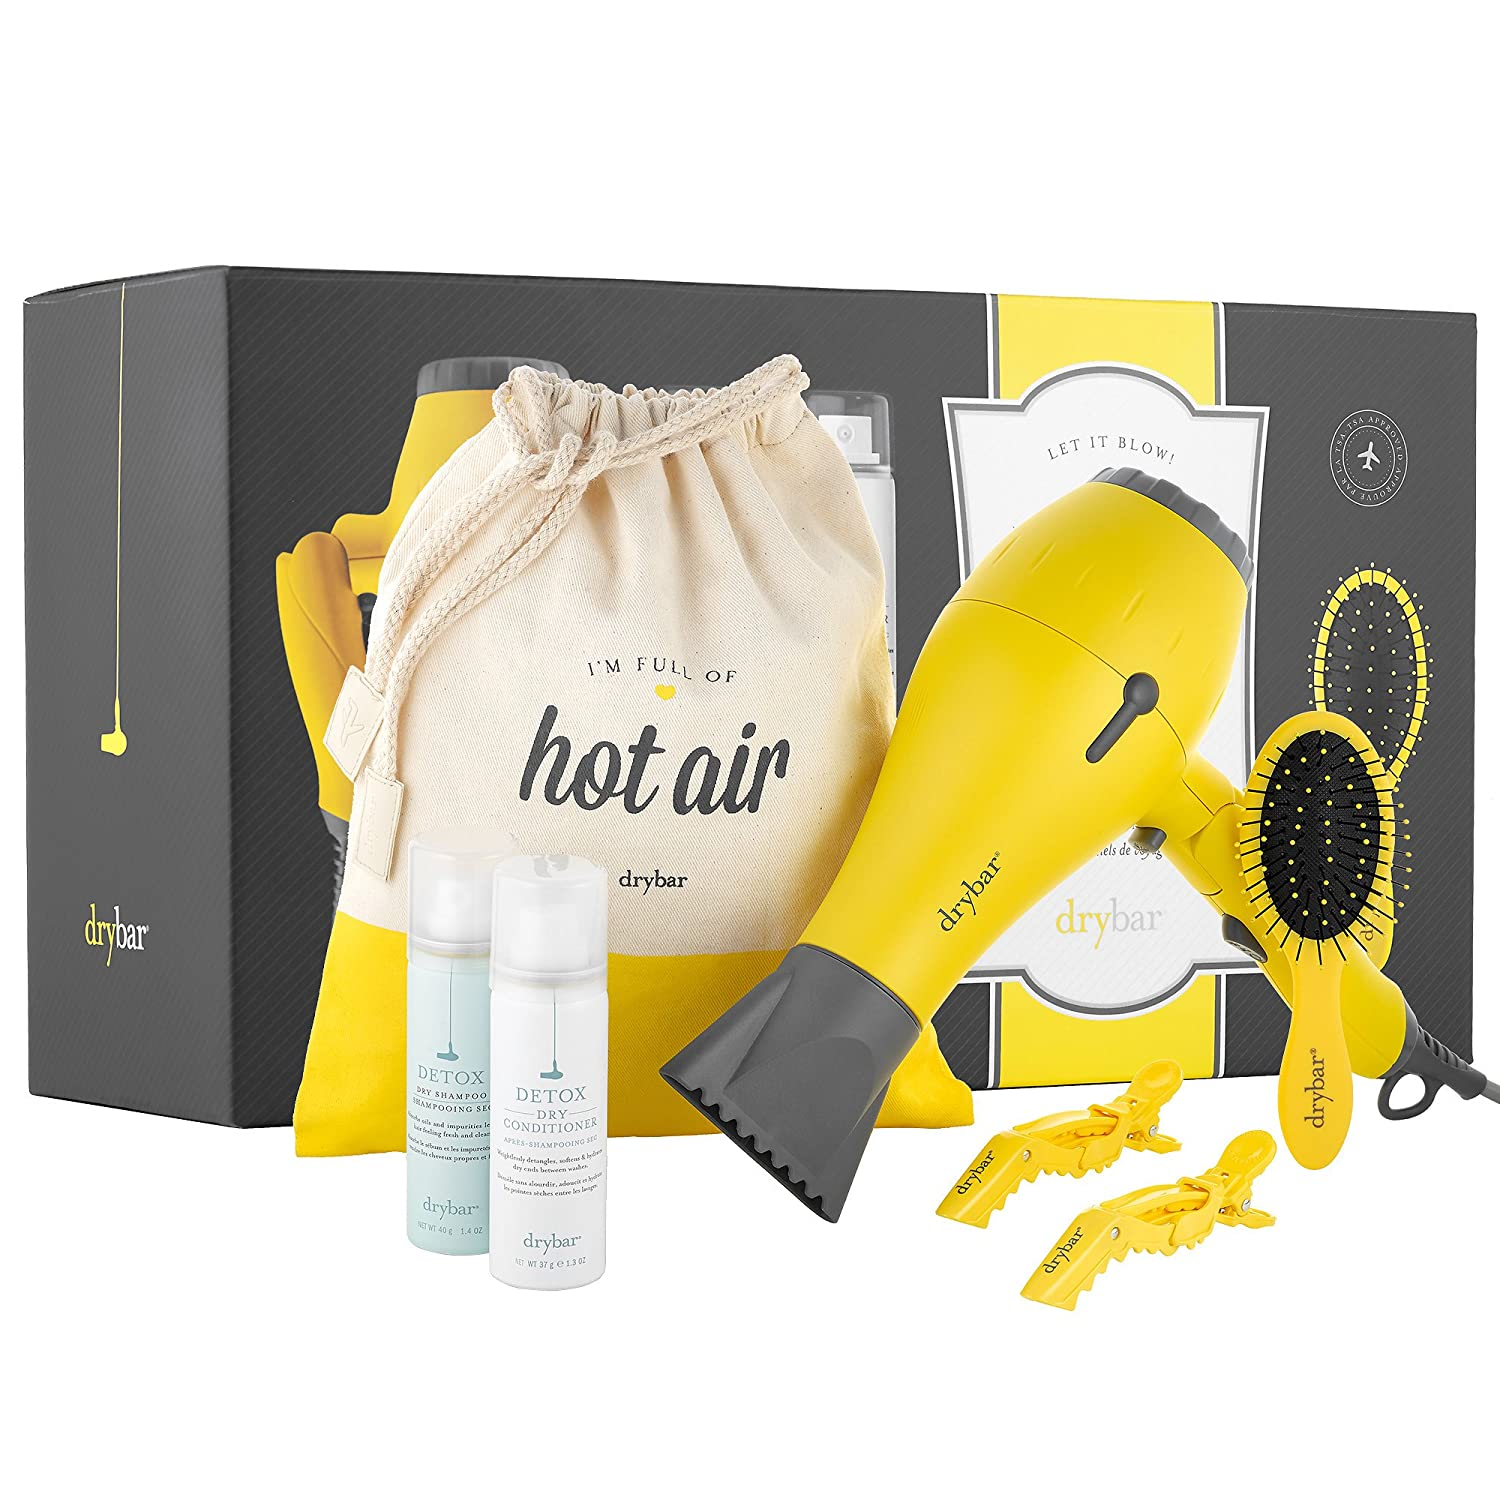 Let it Blow It s Drybar to Go The Ultimate Travel Essentials Kit – Baby Buttercup Travel Hair Dryer, Lil Lemon Drop Daily Detangler Hair Brush, and more